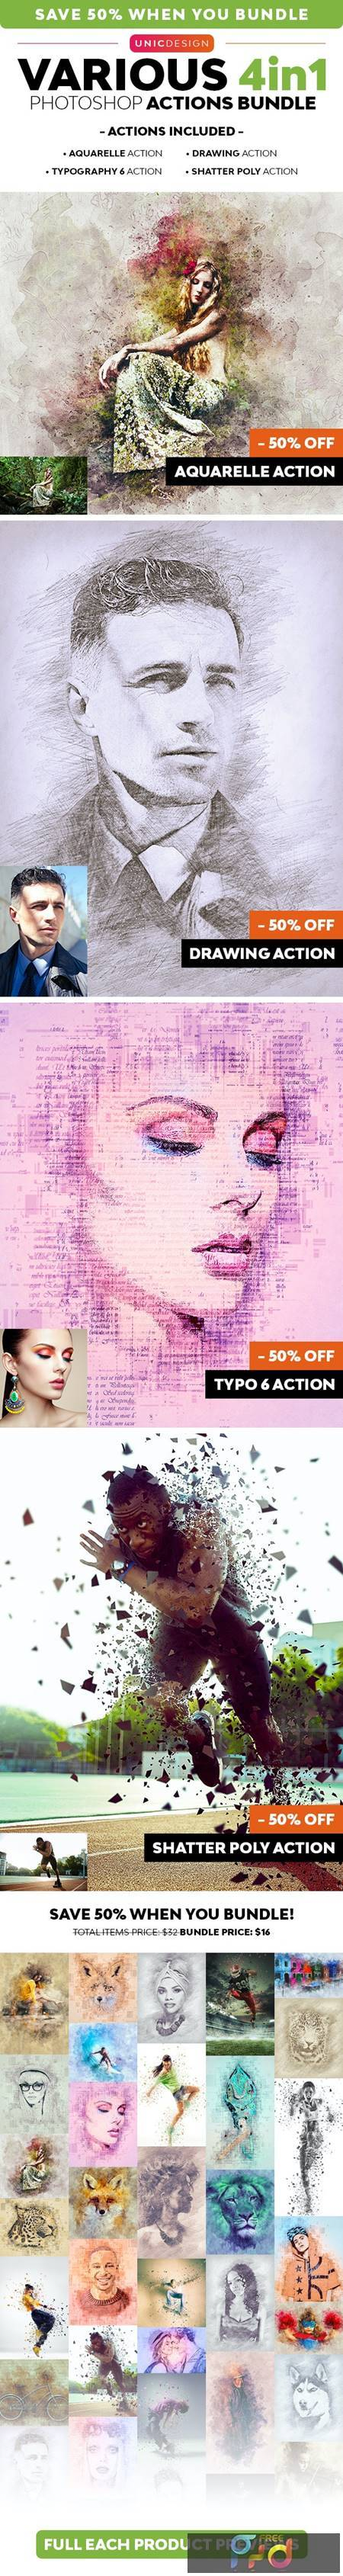 Various 4in1 Photoshop Actions Bundle 26390058 1